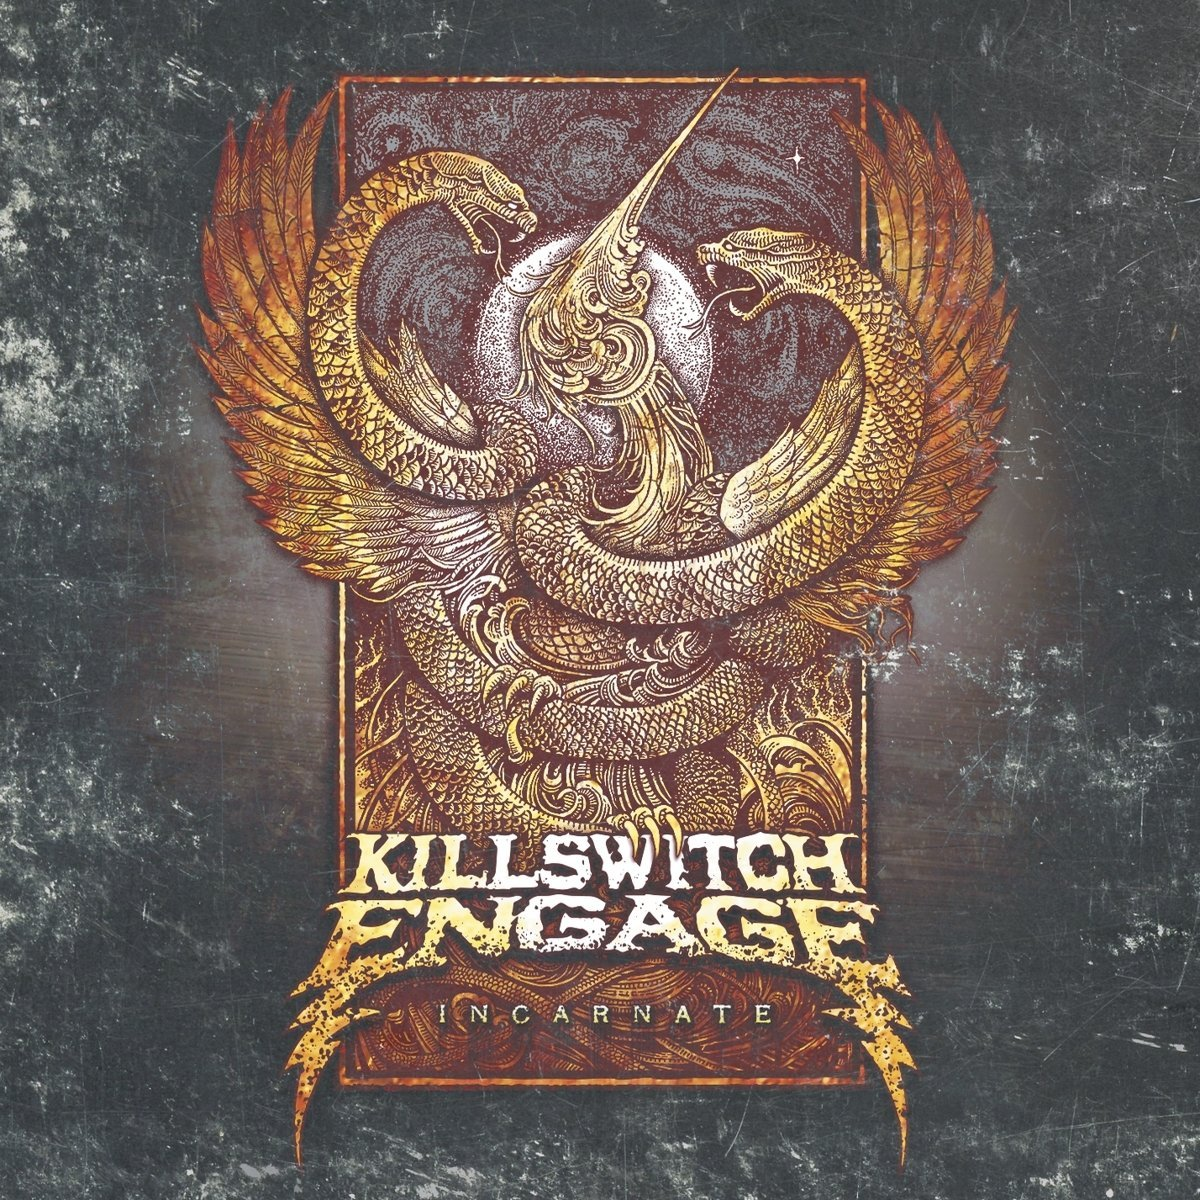 Killswitch Engage: Incarnate (2016) Book Cover